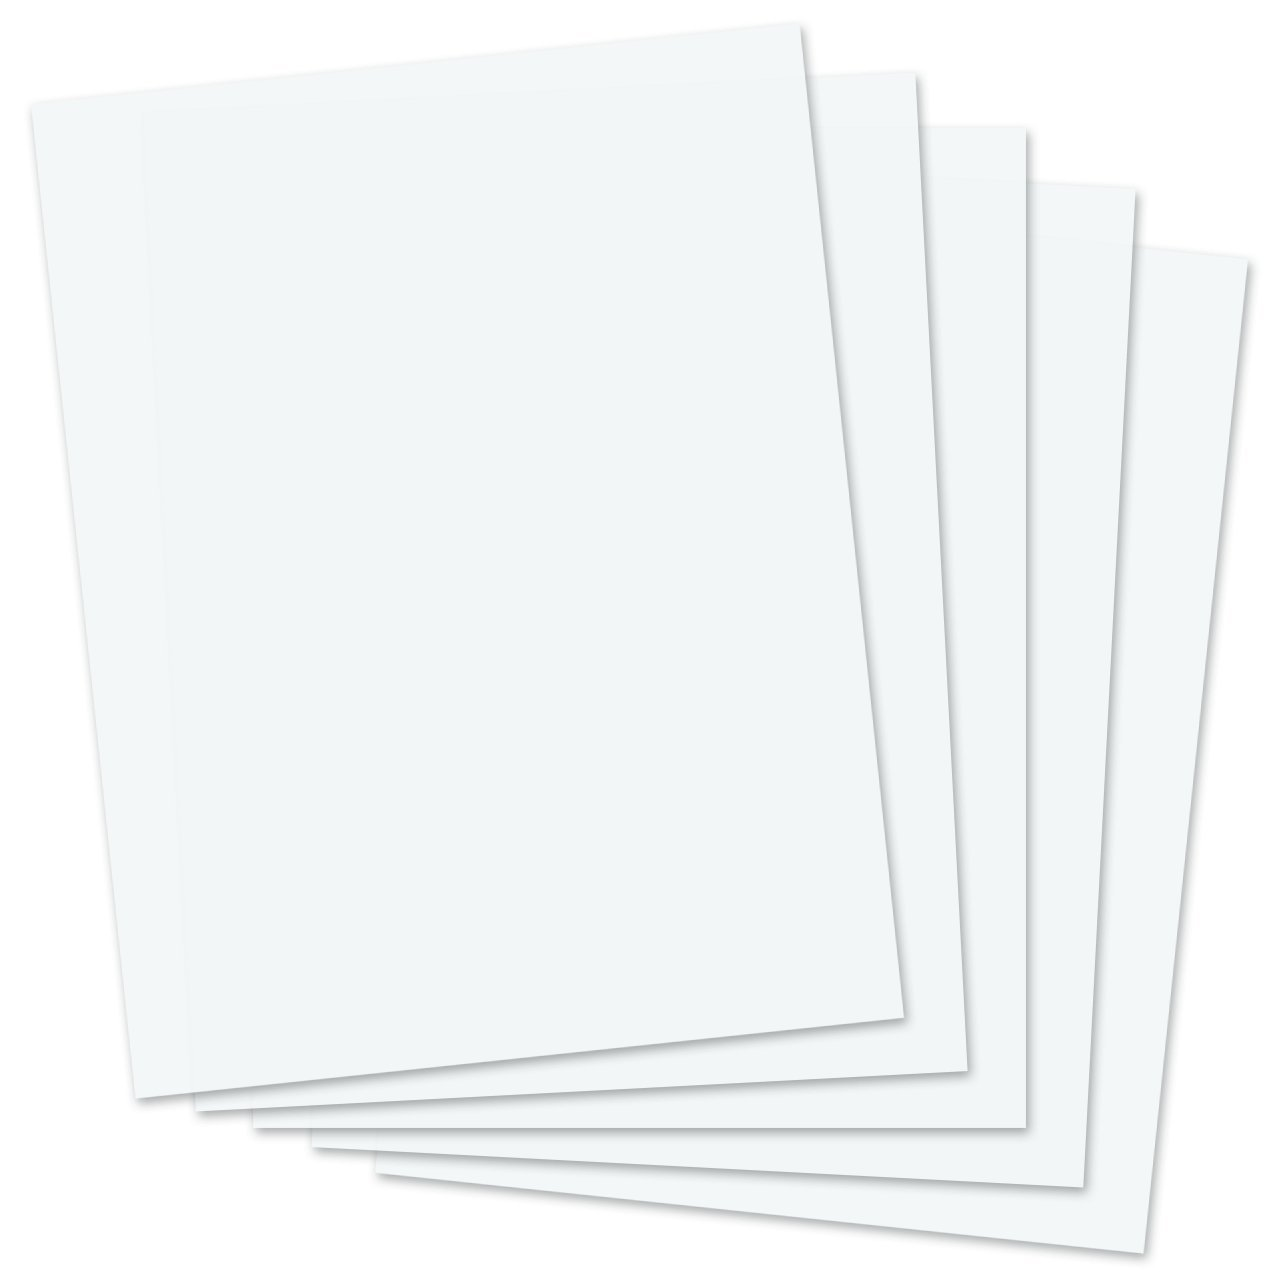 SmartSolve IT117139 8.5'' x 11'' Dissolving Paper (Pack of 1000)